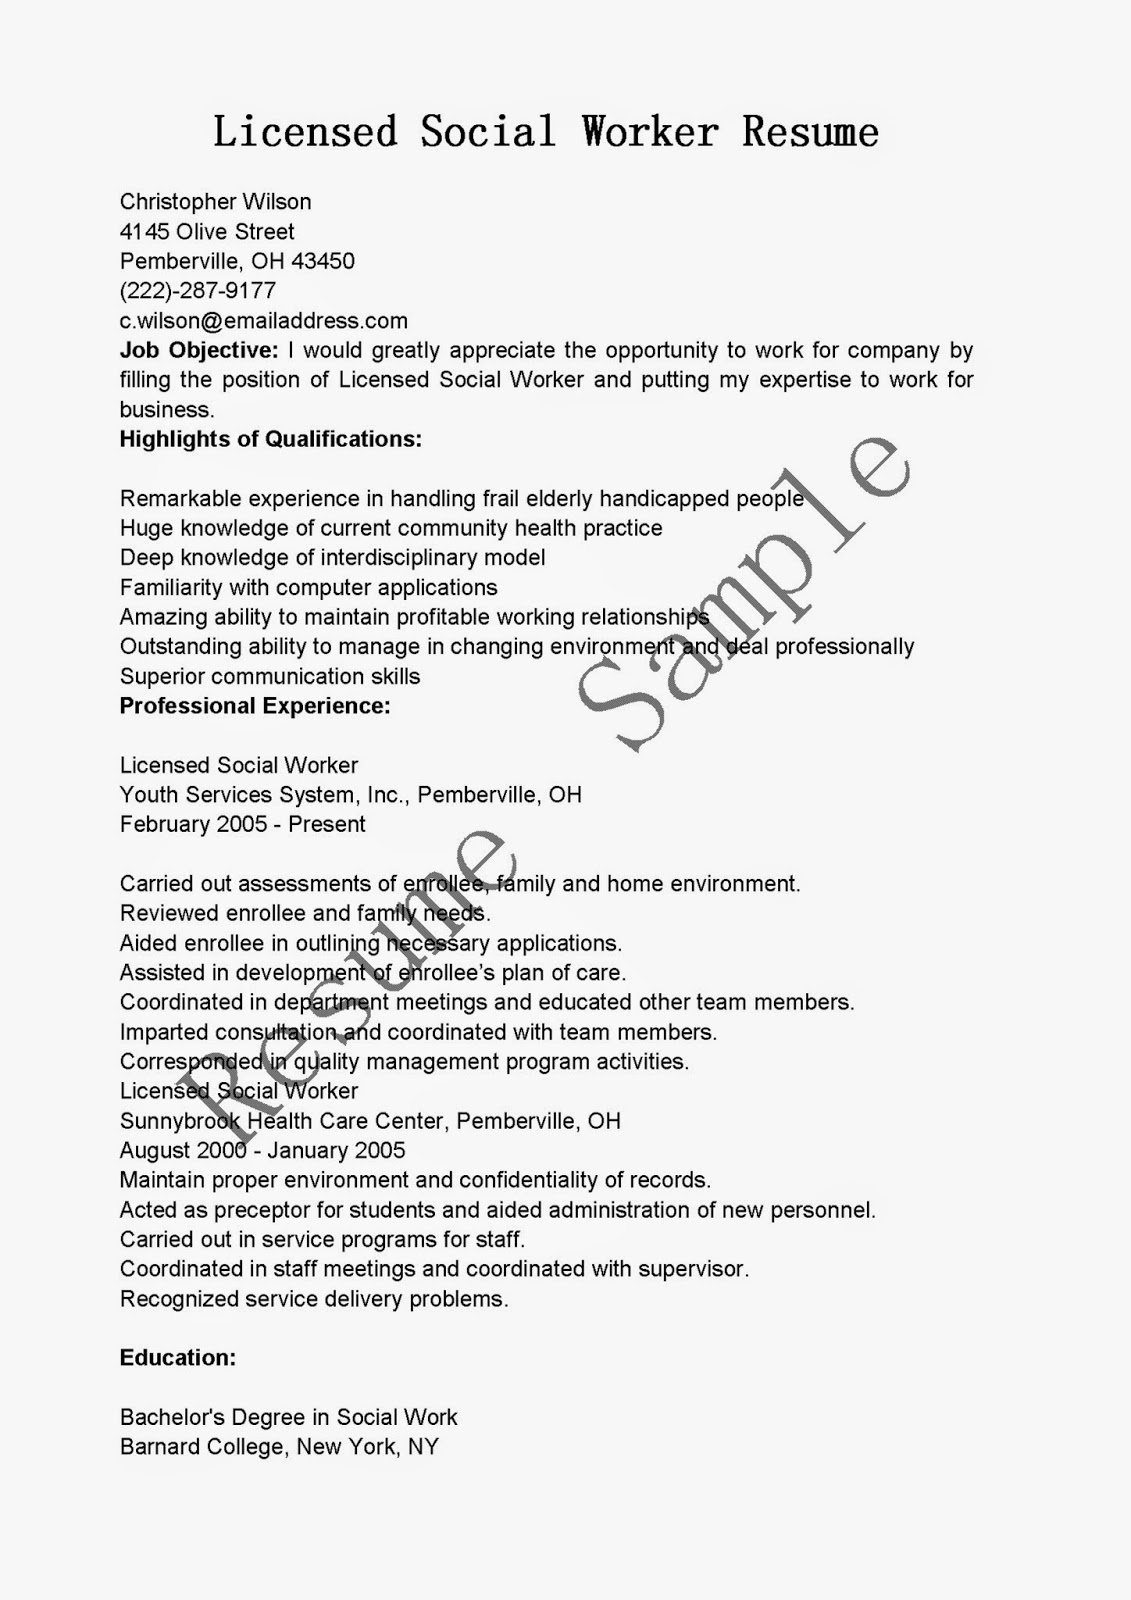 Social Worker Resume Examples Resume Samples Licensed Social Worker Resume Sample